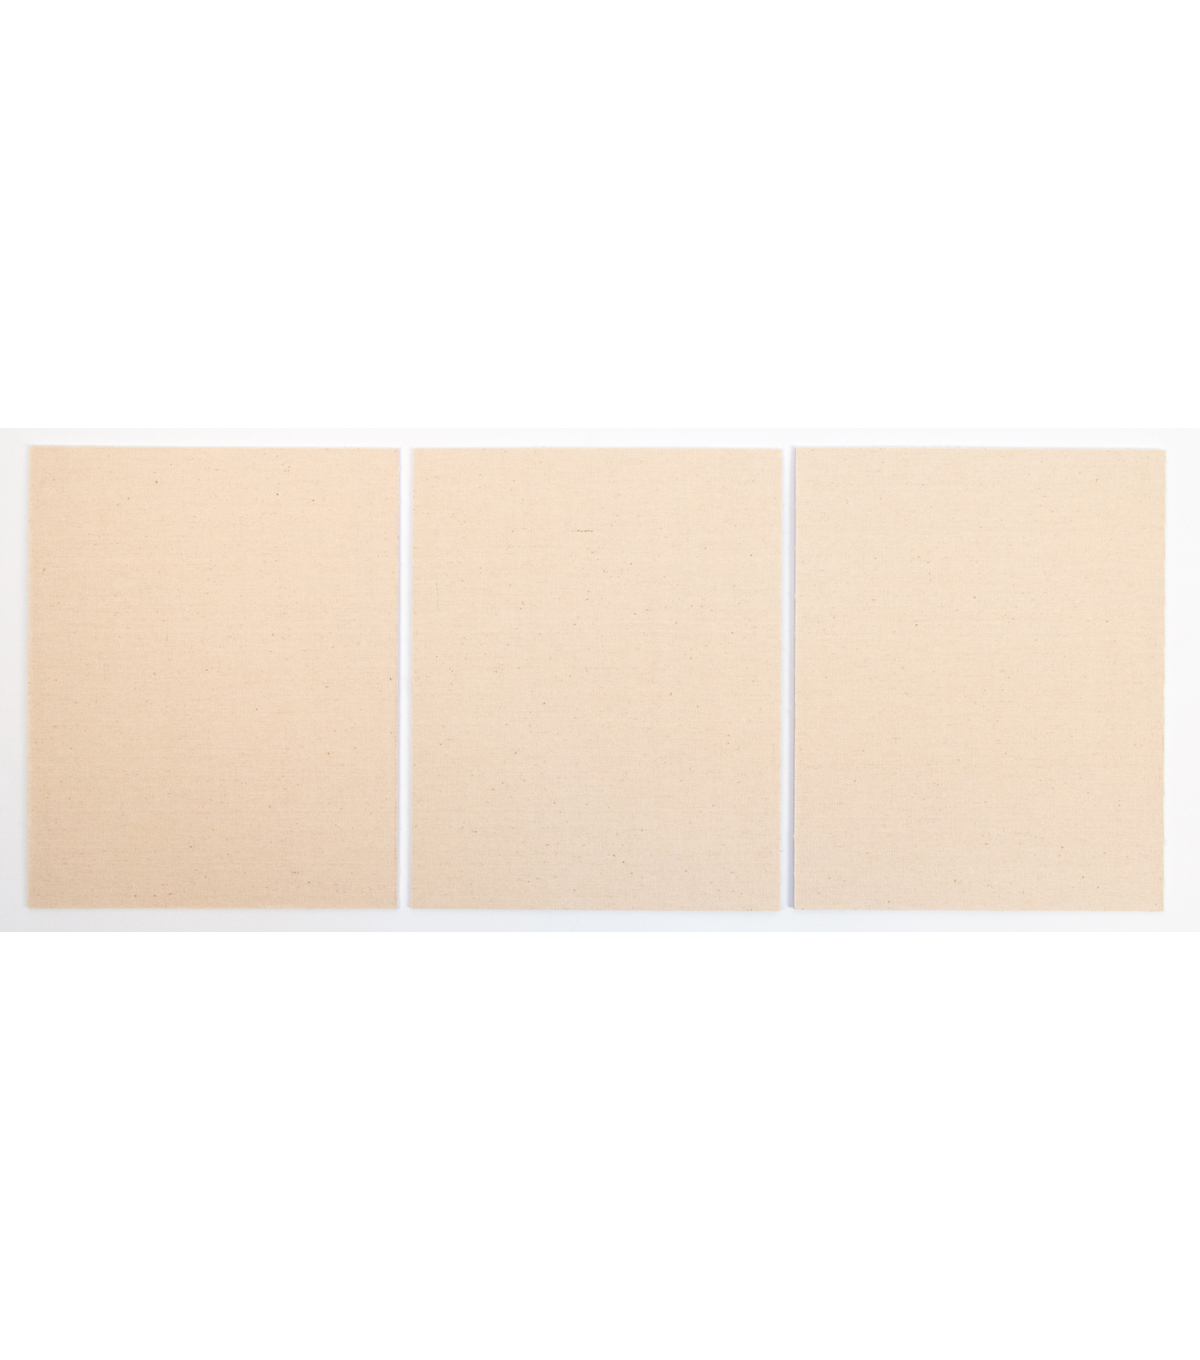 8\'\'X10\'\' 3 Pack Of Linen-Covered Matboard Sheets | JOANN